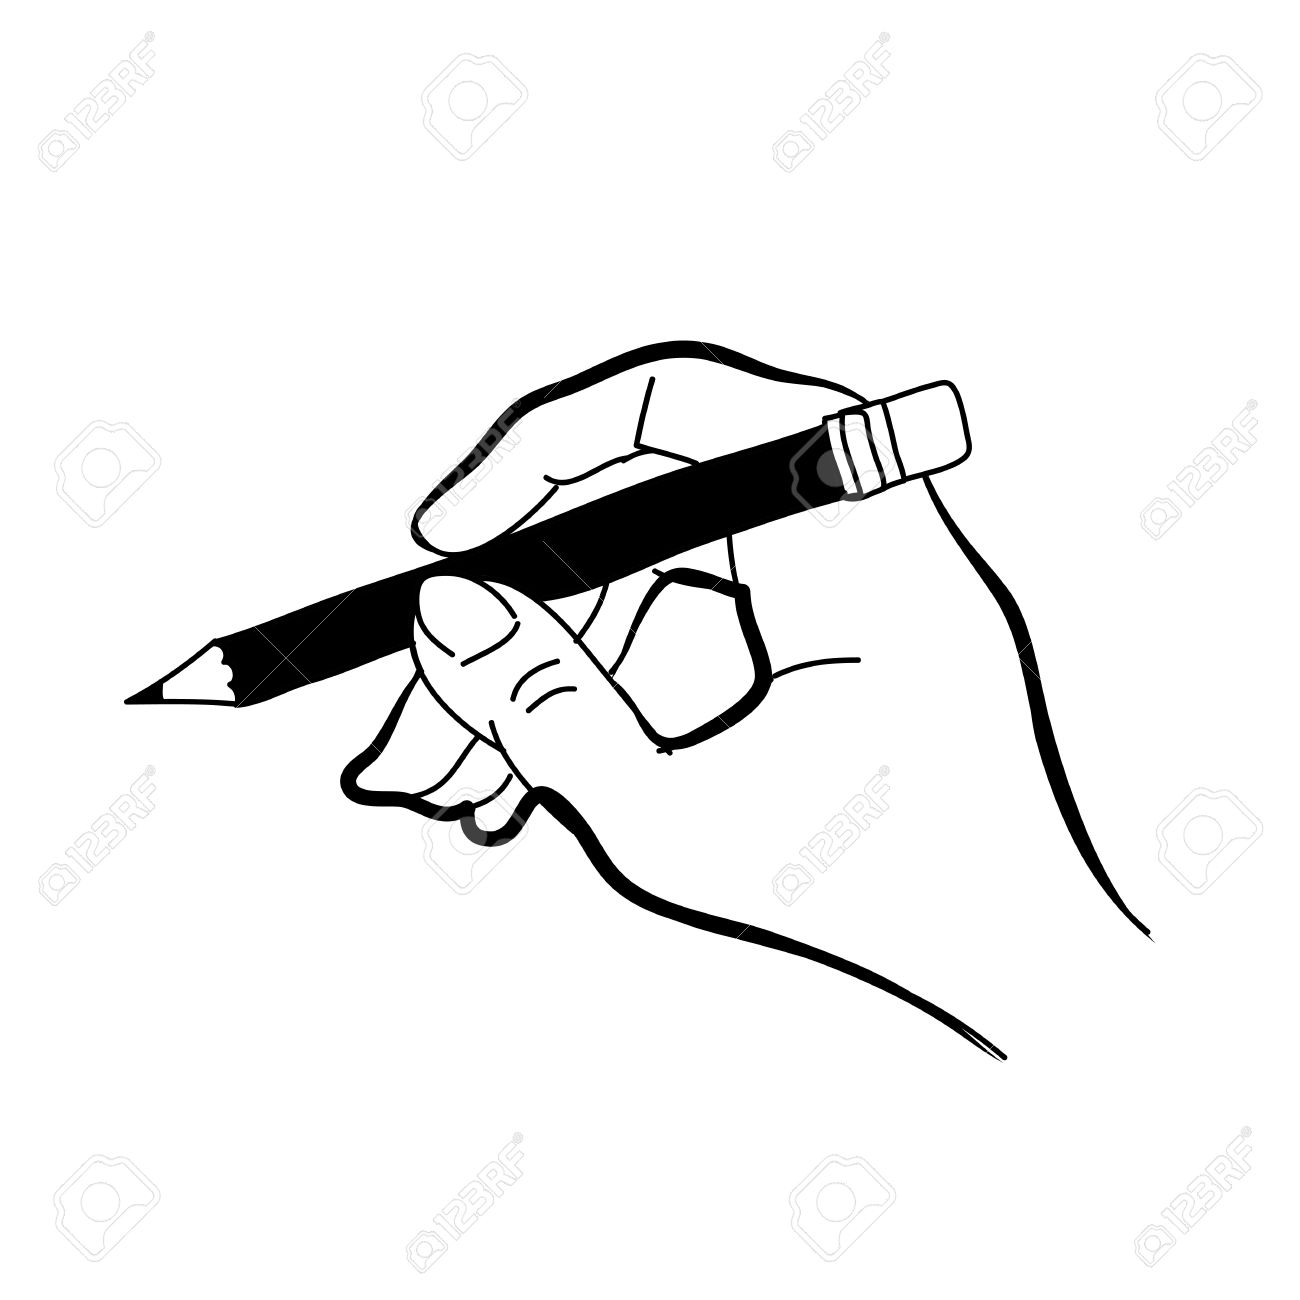 Hand drawing freehand sketch hand holding pencil for design stock vector 18817163